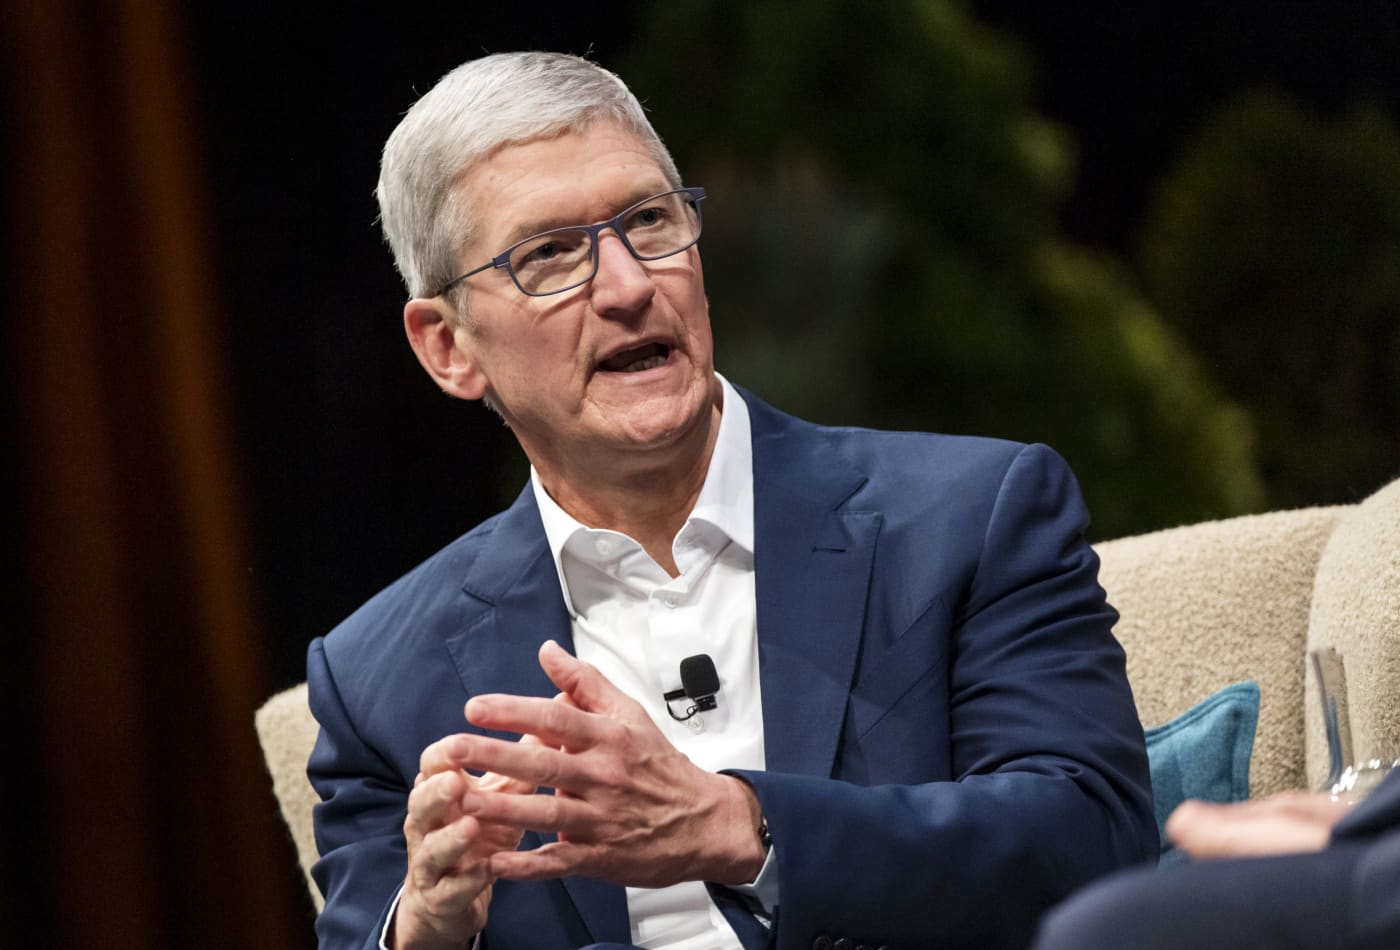 Read the email Tim Cook sent to Apple employees about George Floyd